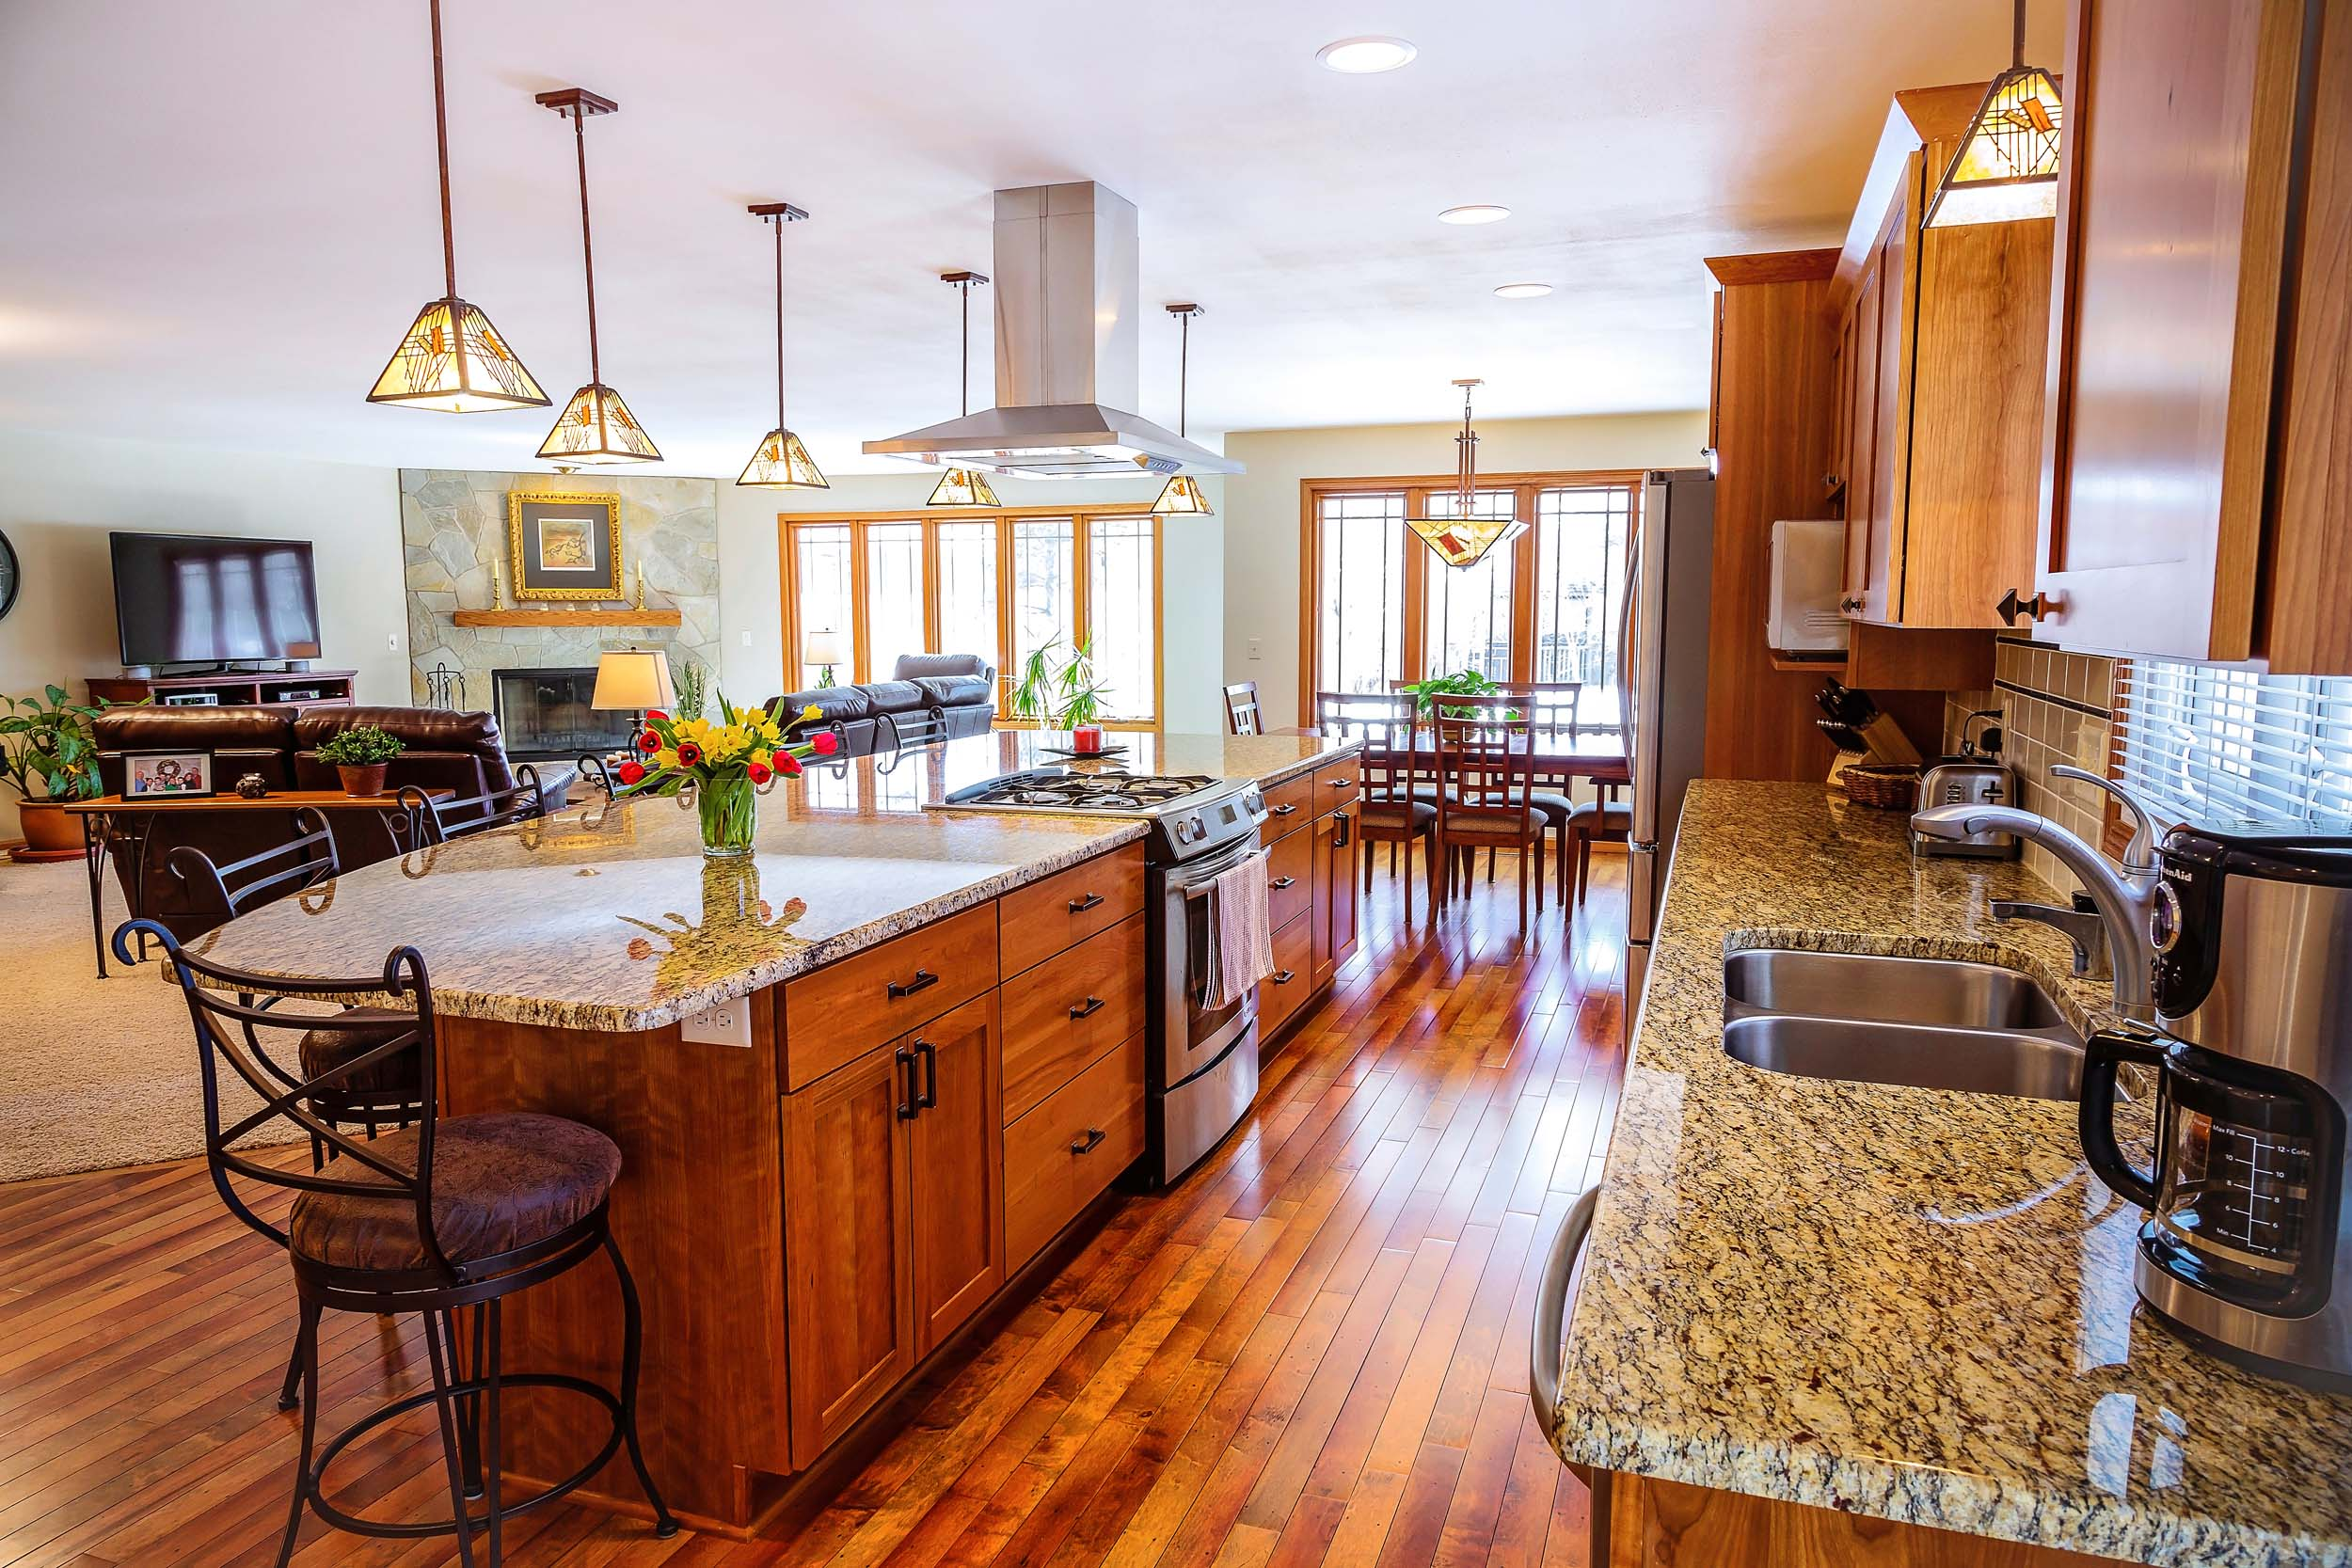 - This remodeled kitchen in Cottage Grove, WI removed walls that separated the kitchen from the dining and living areas. The kitchen is now bright, and also connected to the best parts of the home.